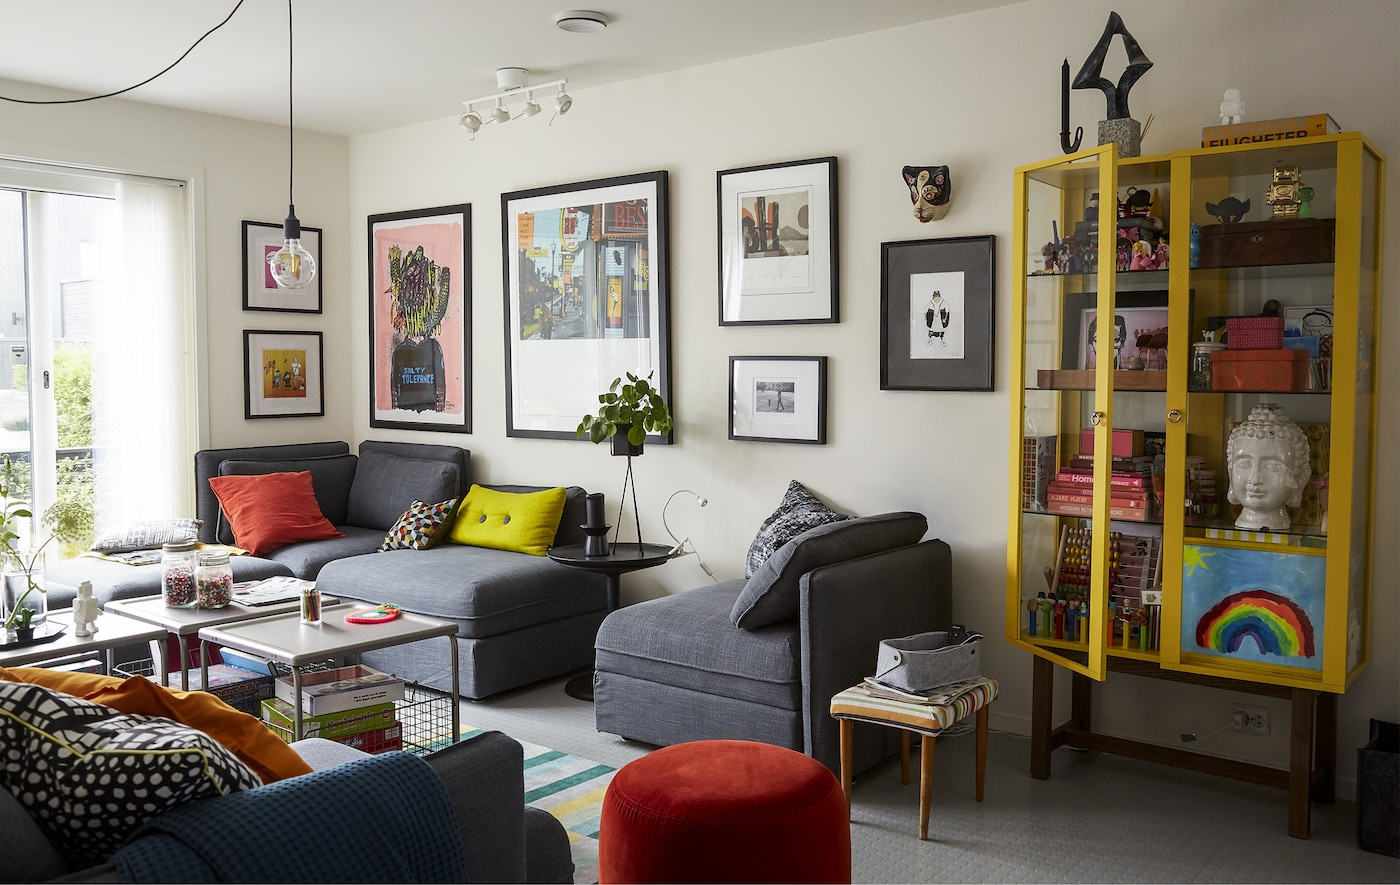 A living room with grey modular sofa, colourful cushions and yellow storage cabinet.